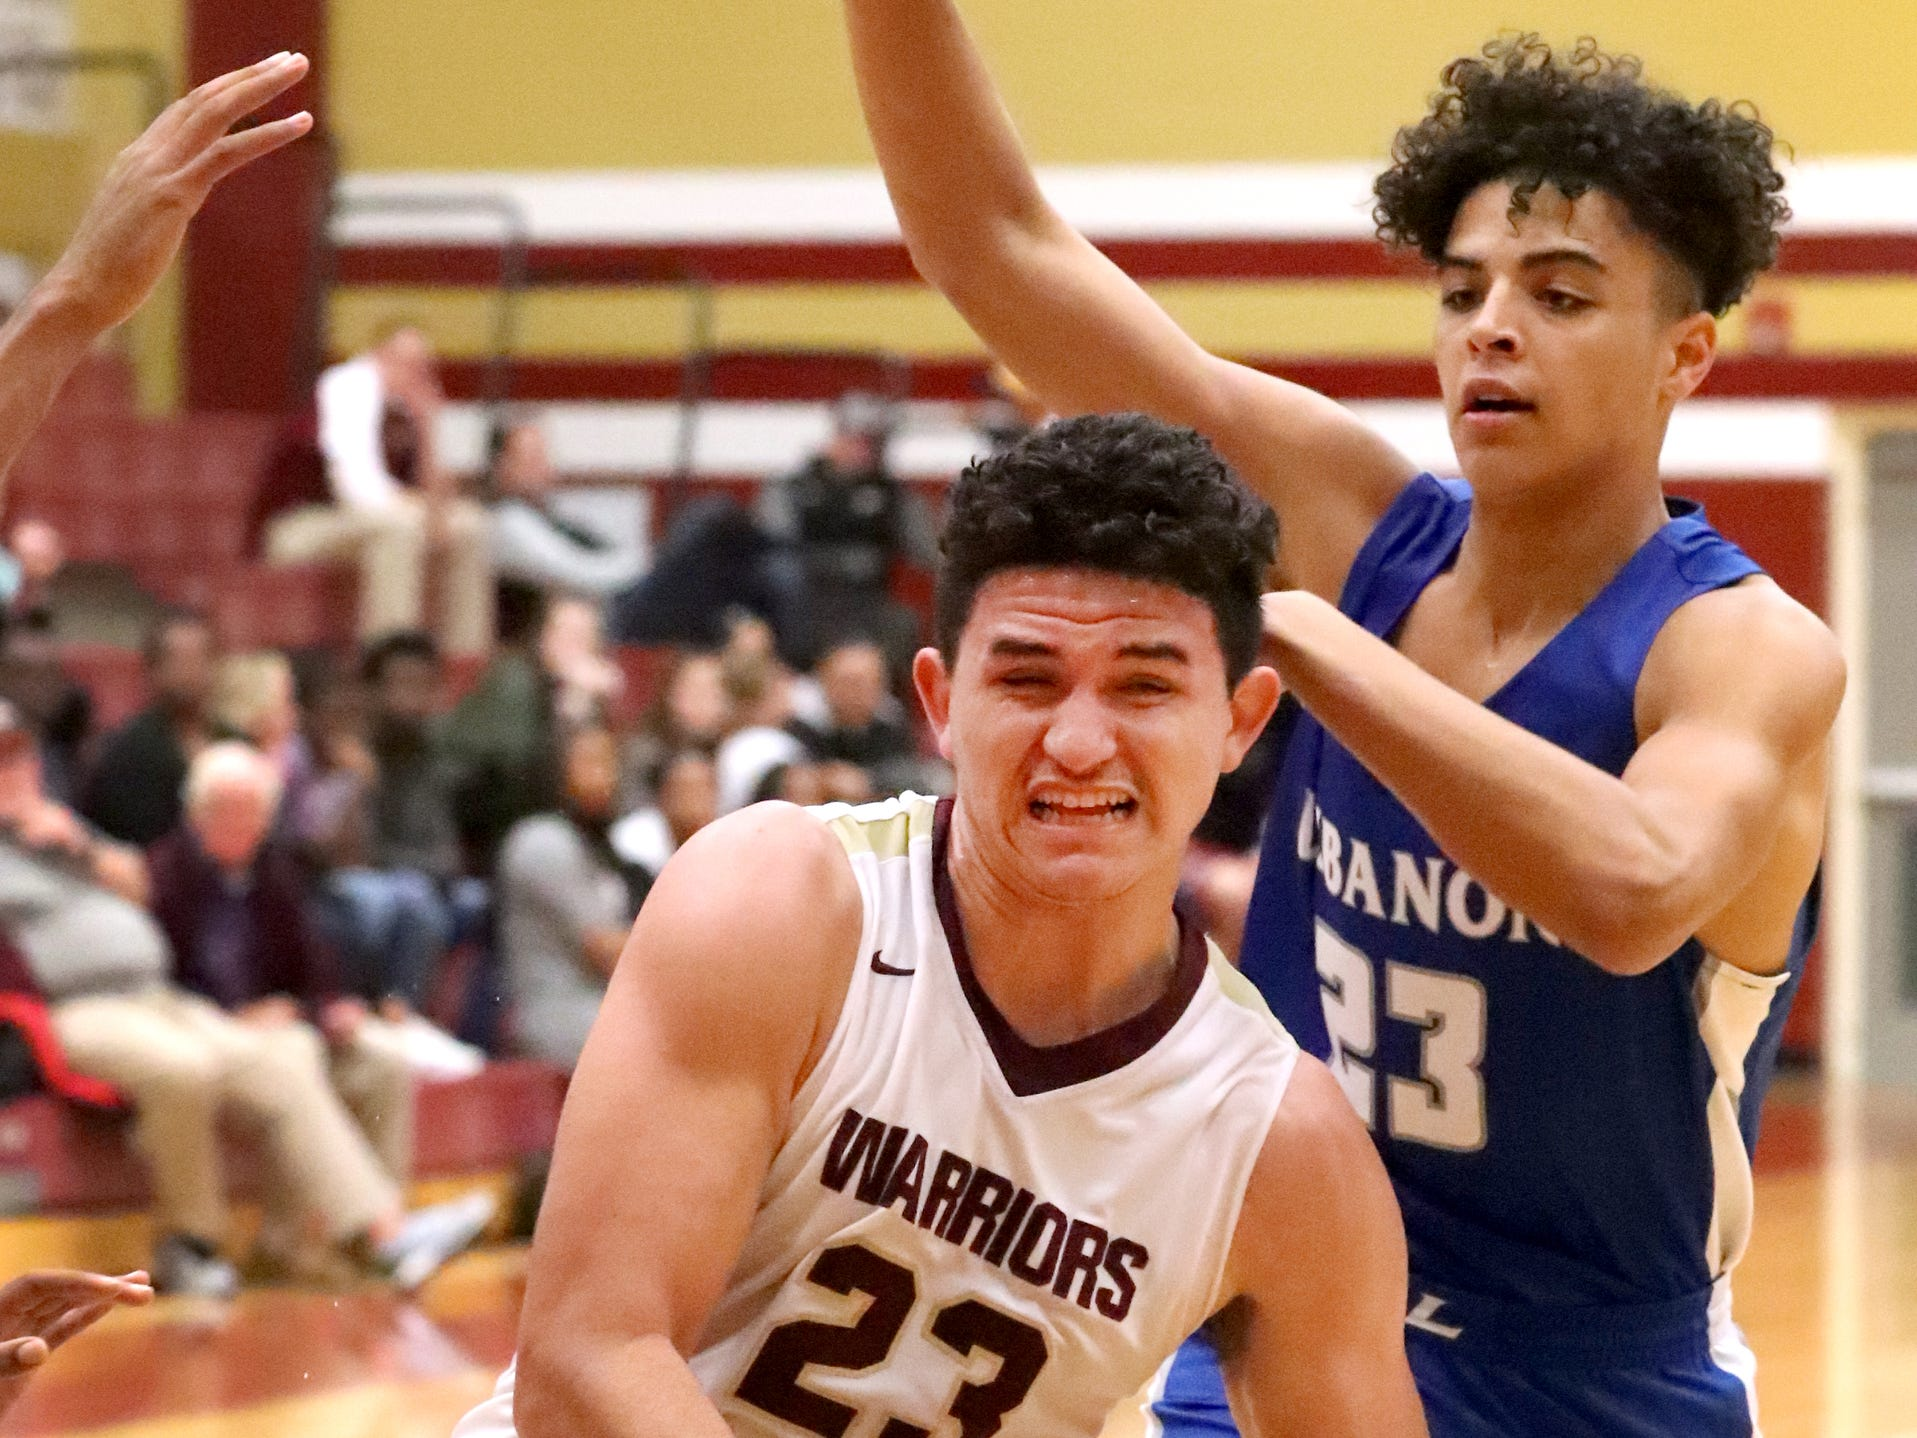 RiverdaleÕs Maliek McAllister (23) pushes toward the basket as Lebanon's  Jackson Stafford (23) guards him during the game at Riverdale on Friday, Nov. 30, 2018.